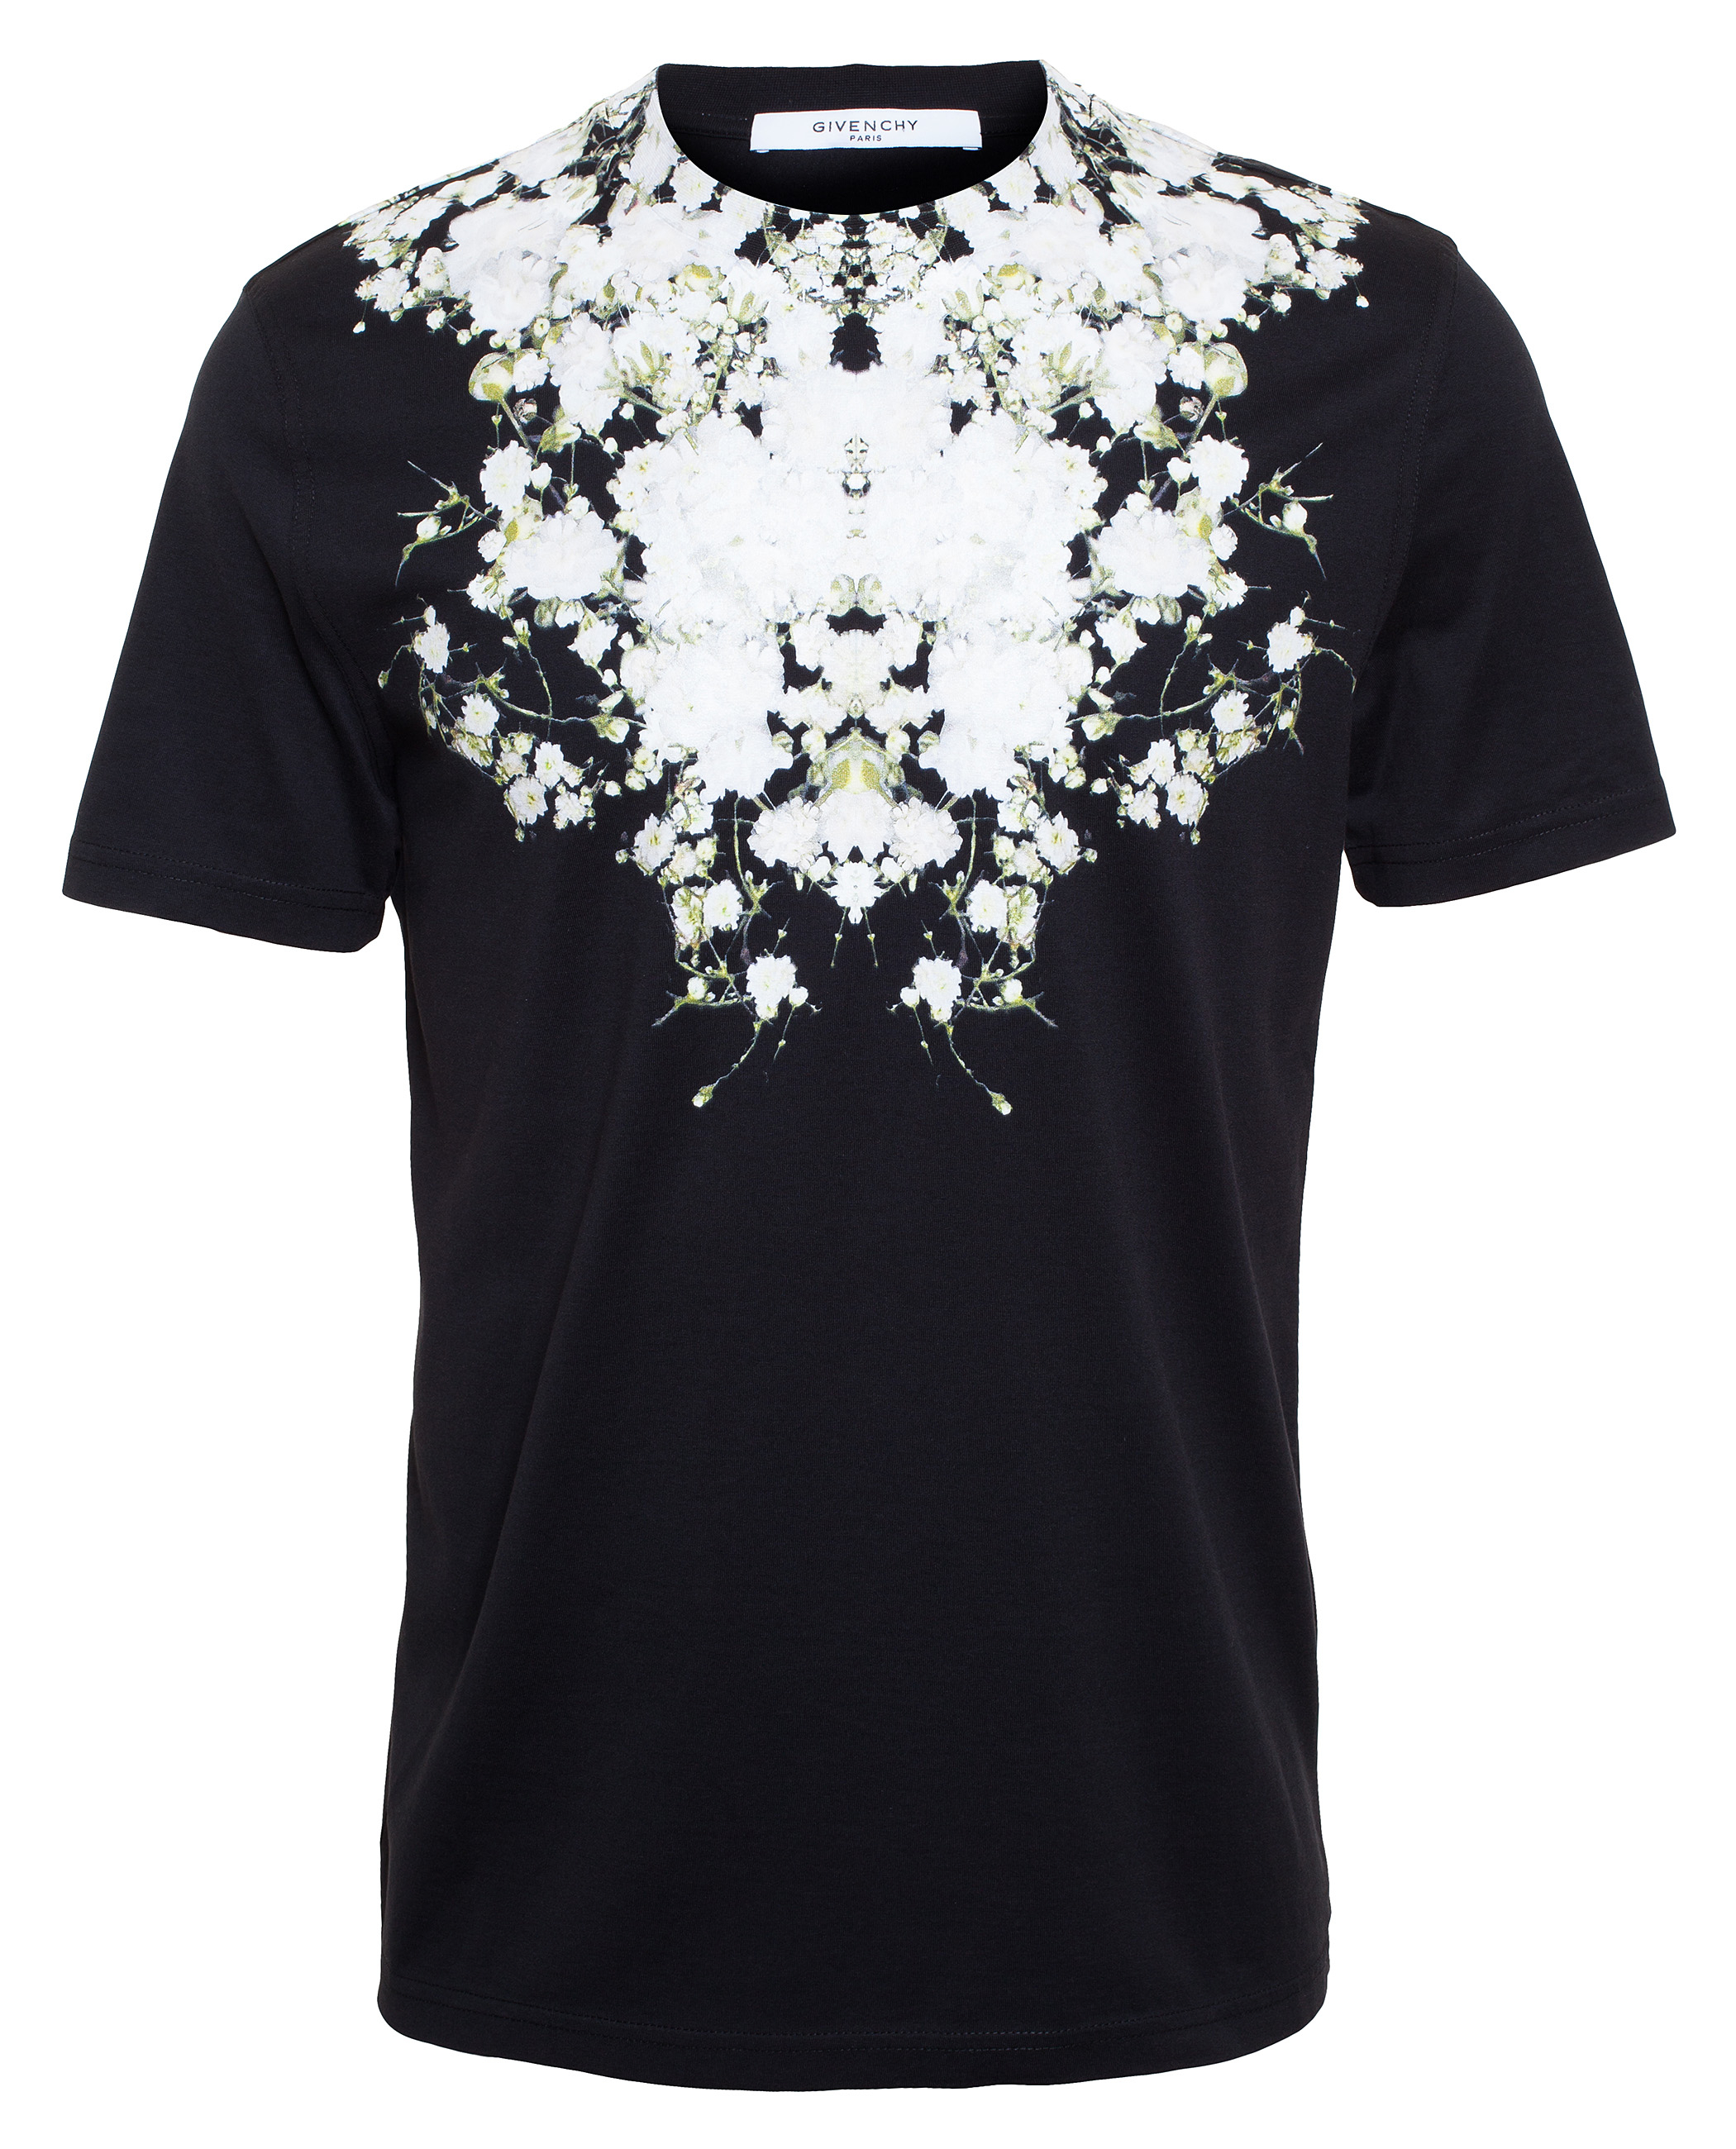 Givenchy t shirt new for Print one t shirt